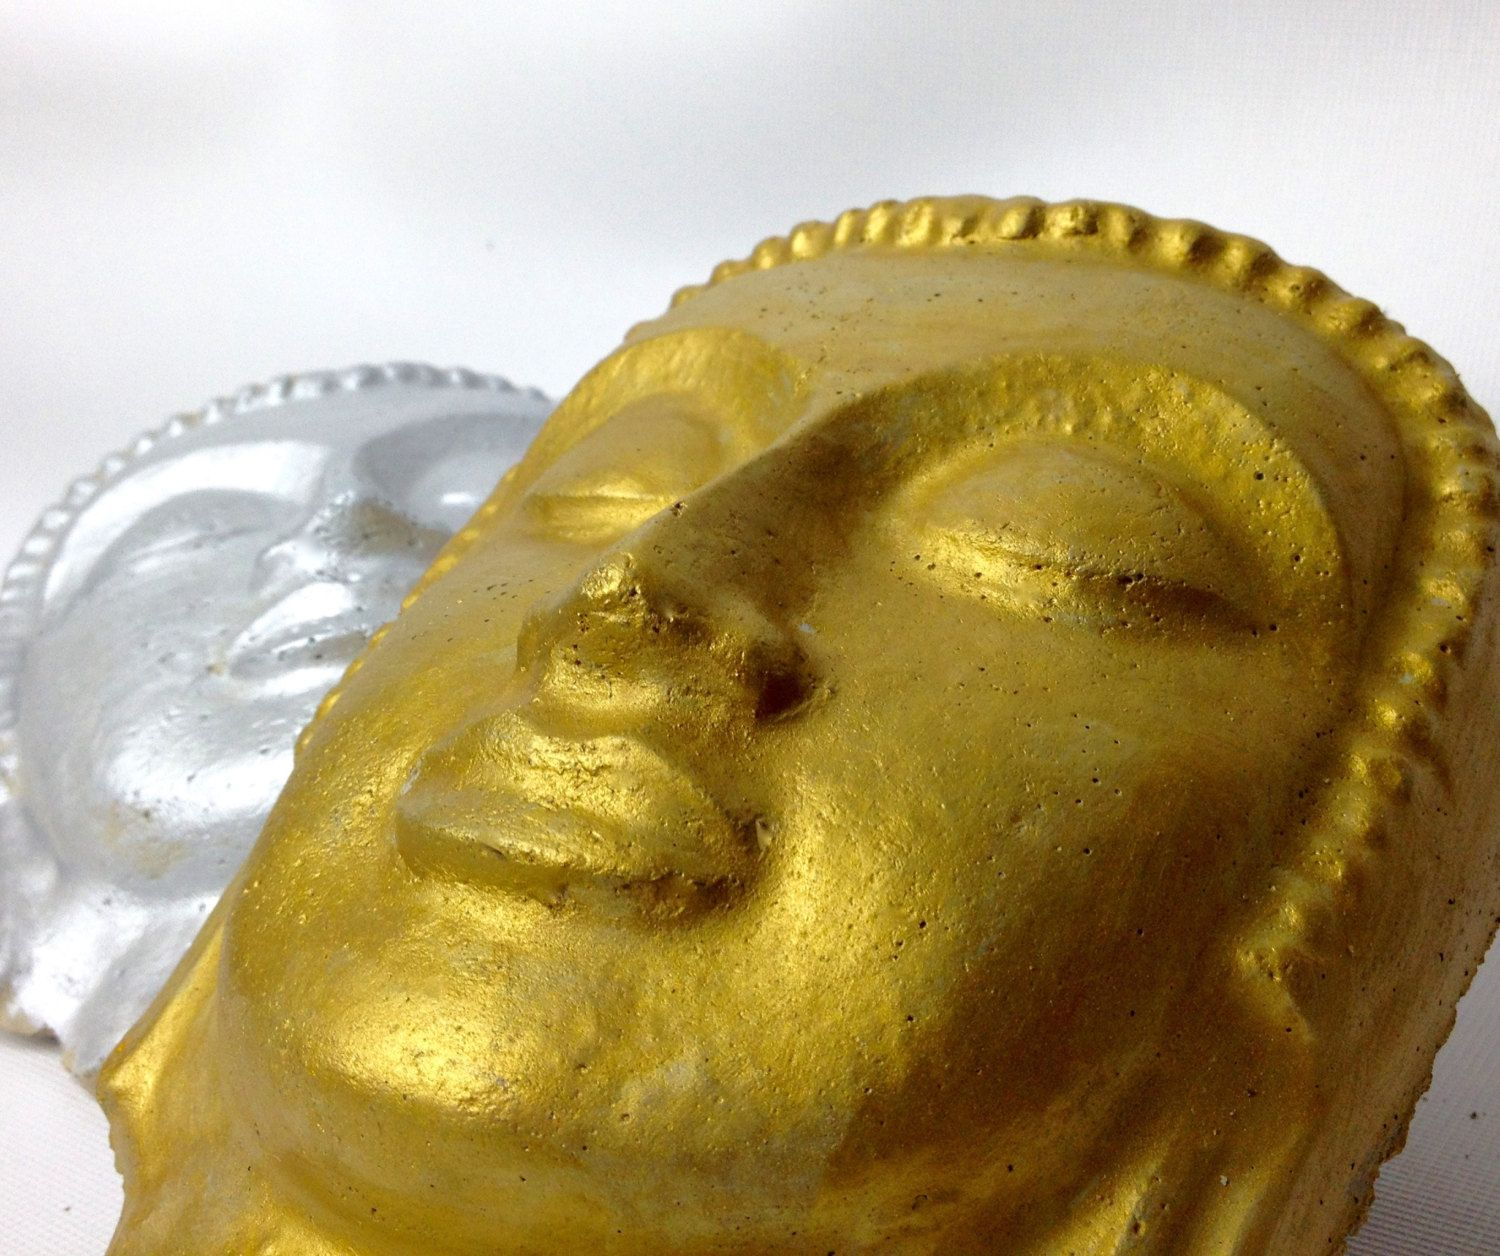 Concrete Buddha Head Gold/silver Painted Buddha Face Cement Garden ...